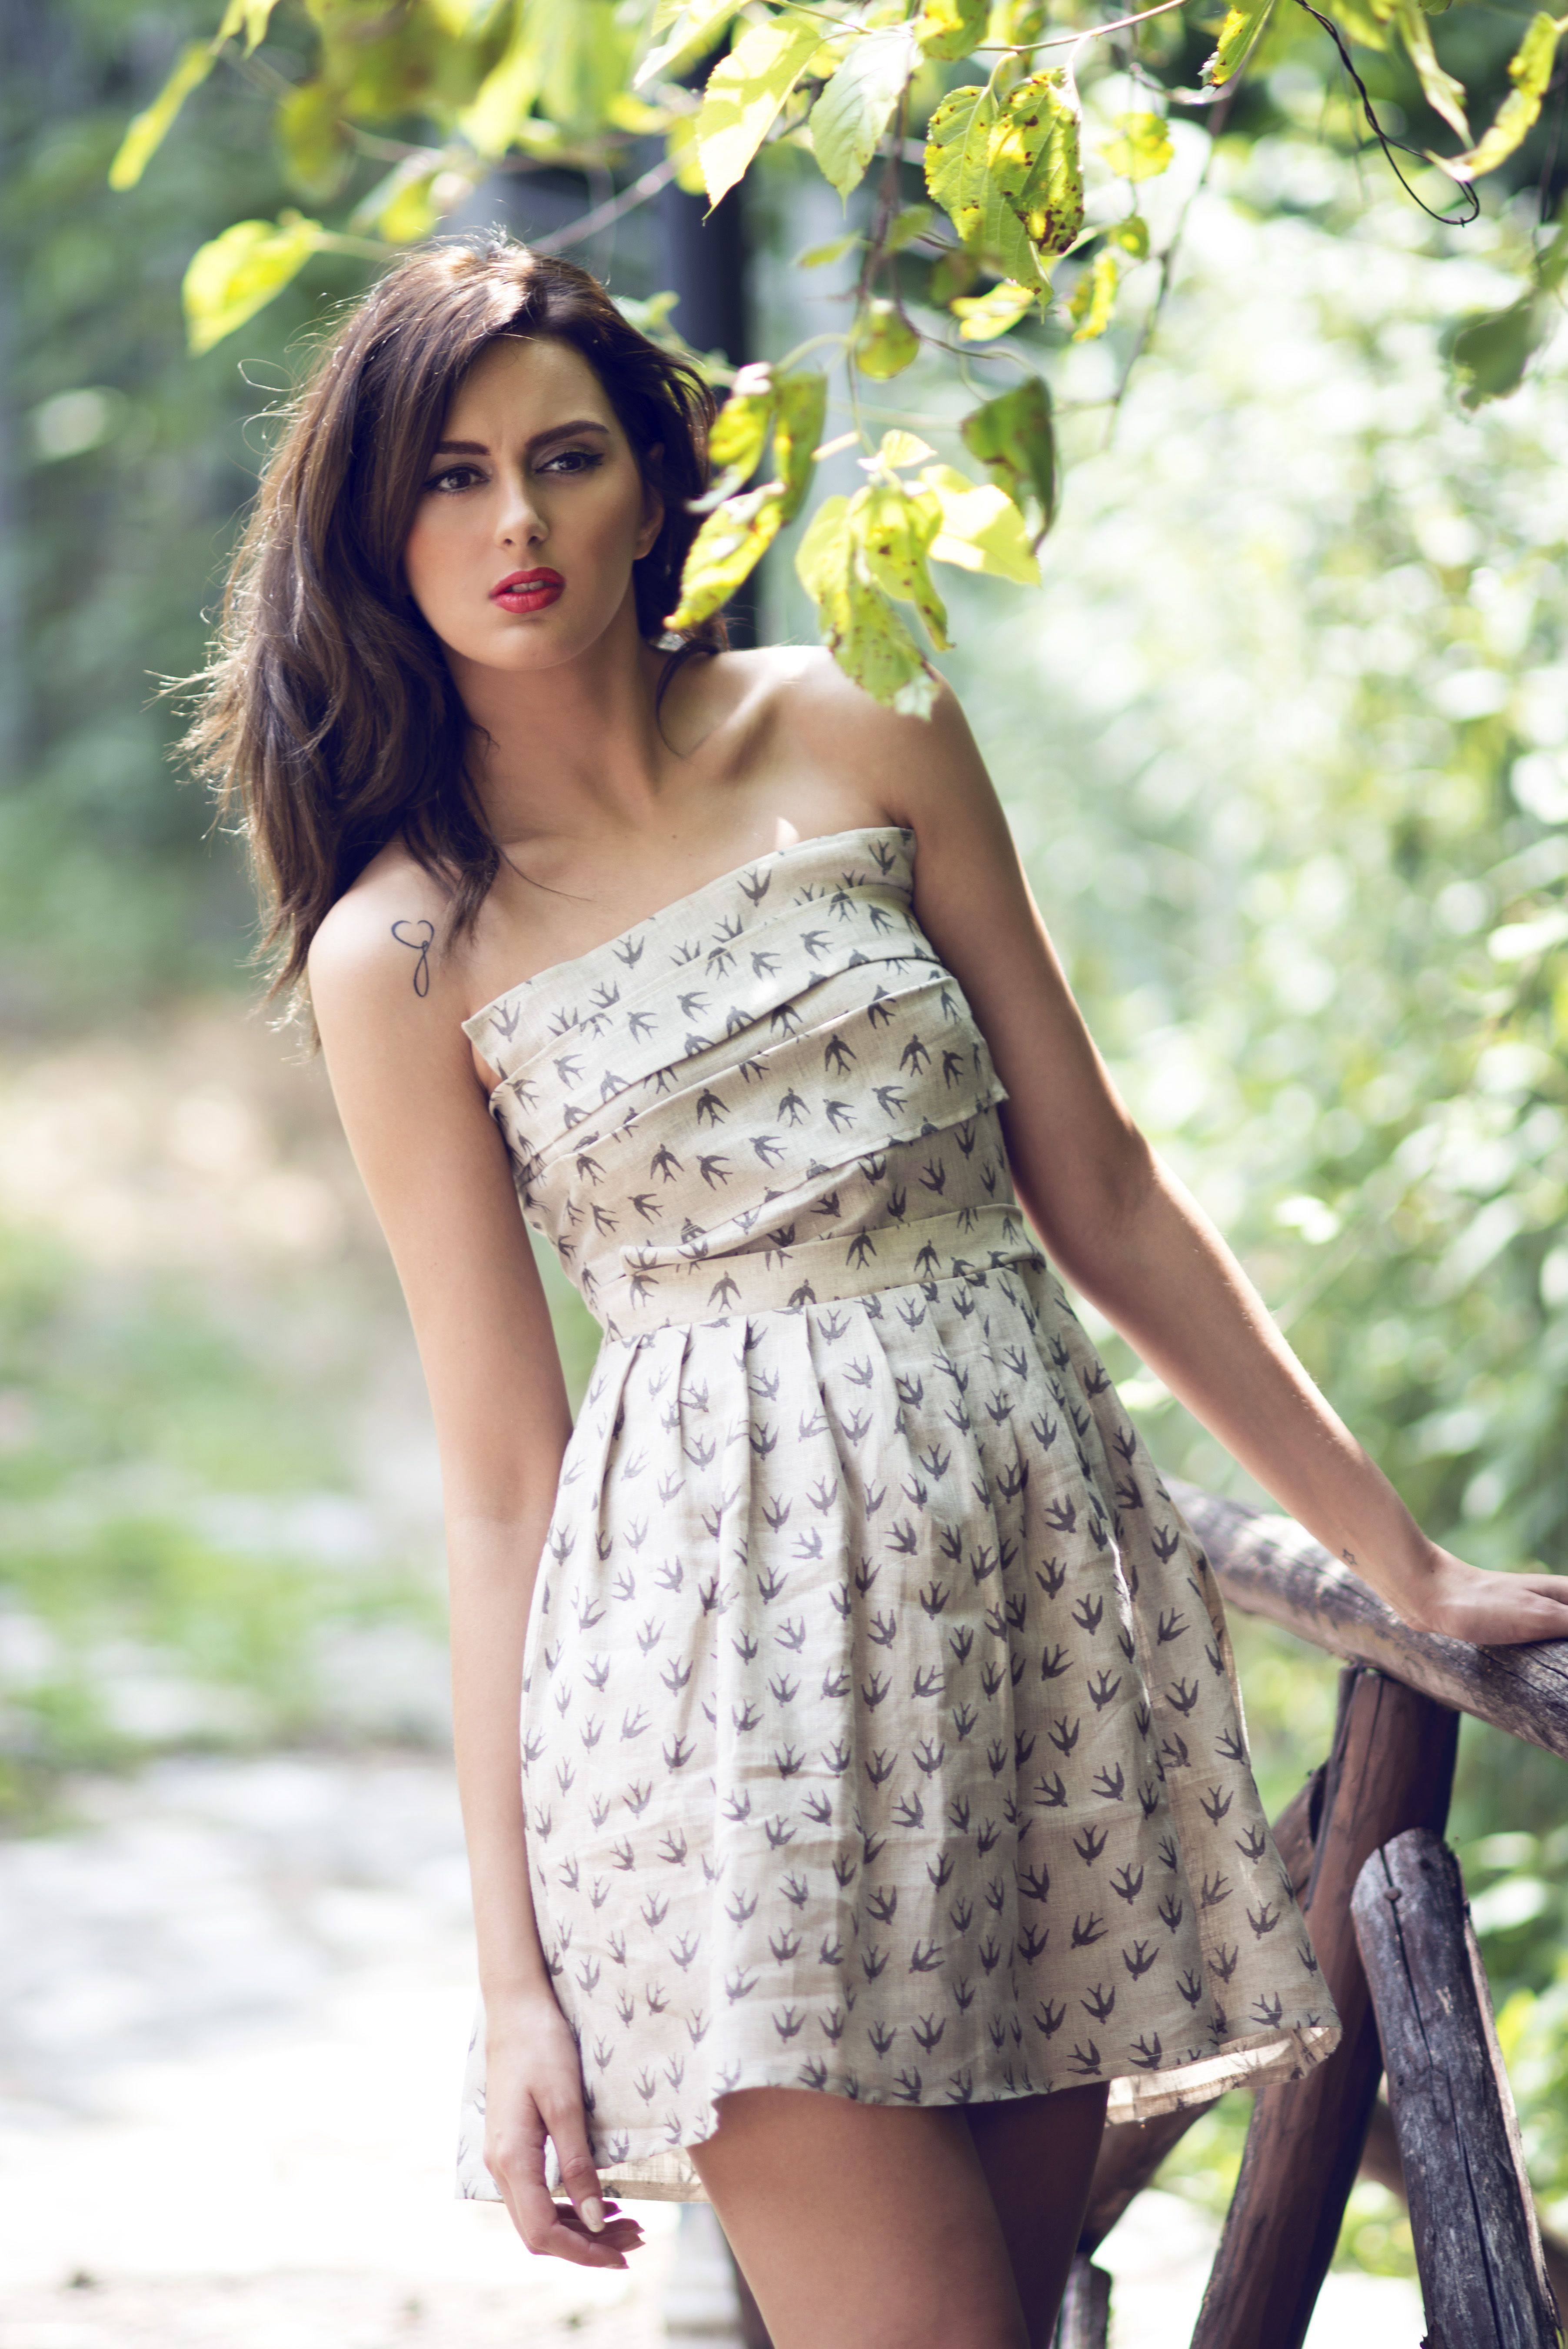 Kimolos dress 100% linen fabric with taupe printed swallows SS15 collection by MuMu organic www.mumusyros.gr